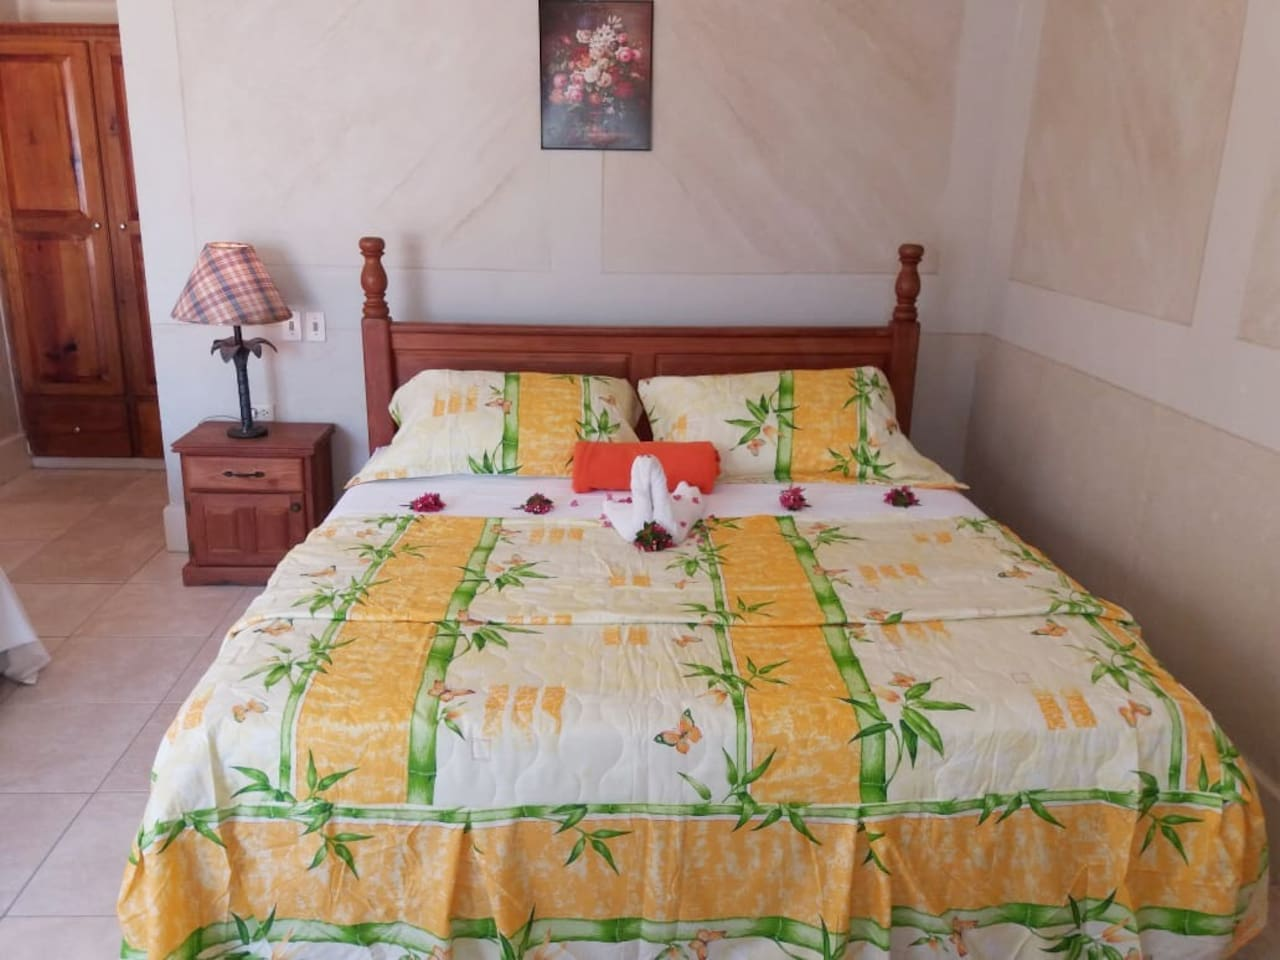 King size bed, air conditioned, wifi, ensuite bathroom, spacious room